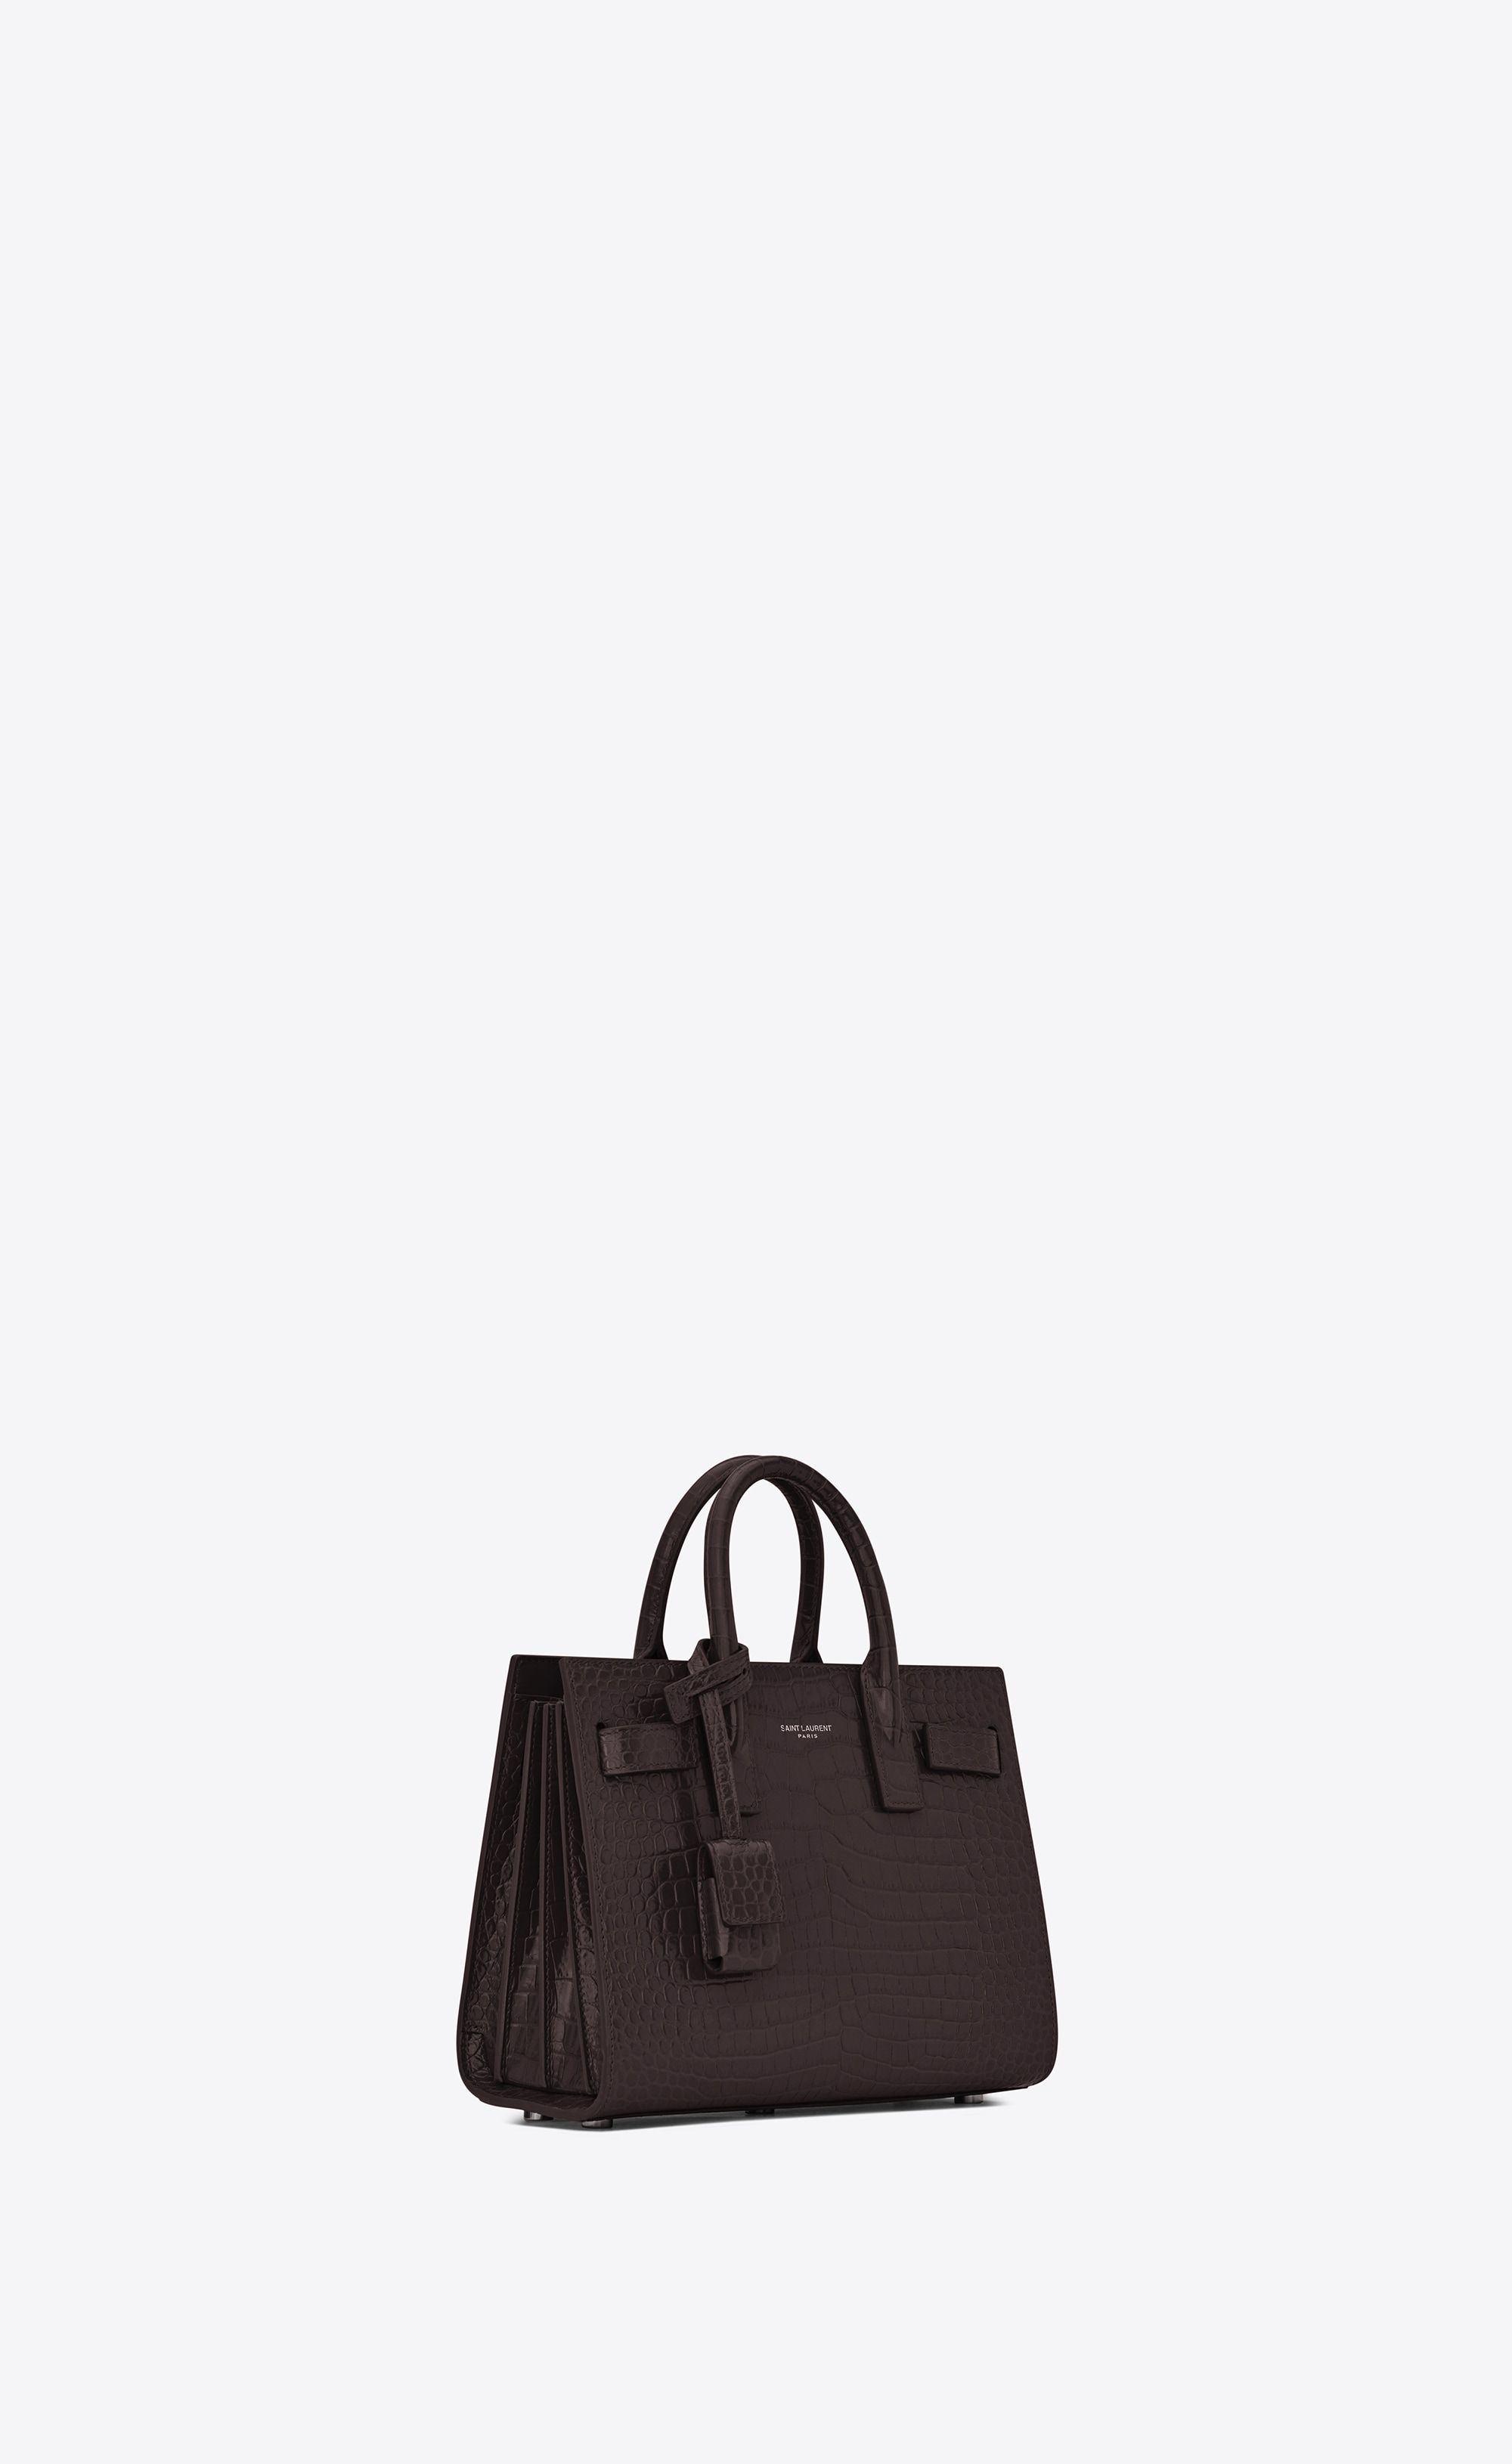 1bd0b5521 Saint Laurent - Classic Nano Sac de Jour bag in black tulip crocodile  embossed shiny leather ($1,690)